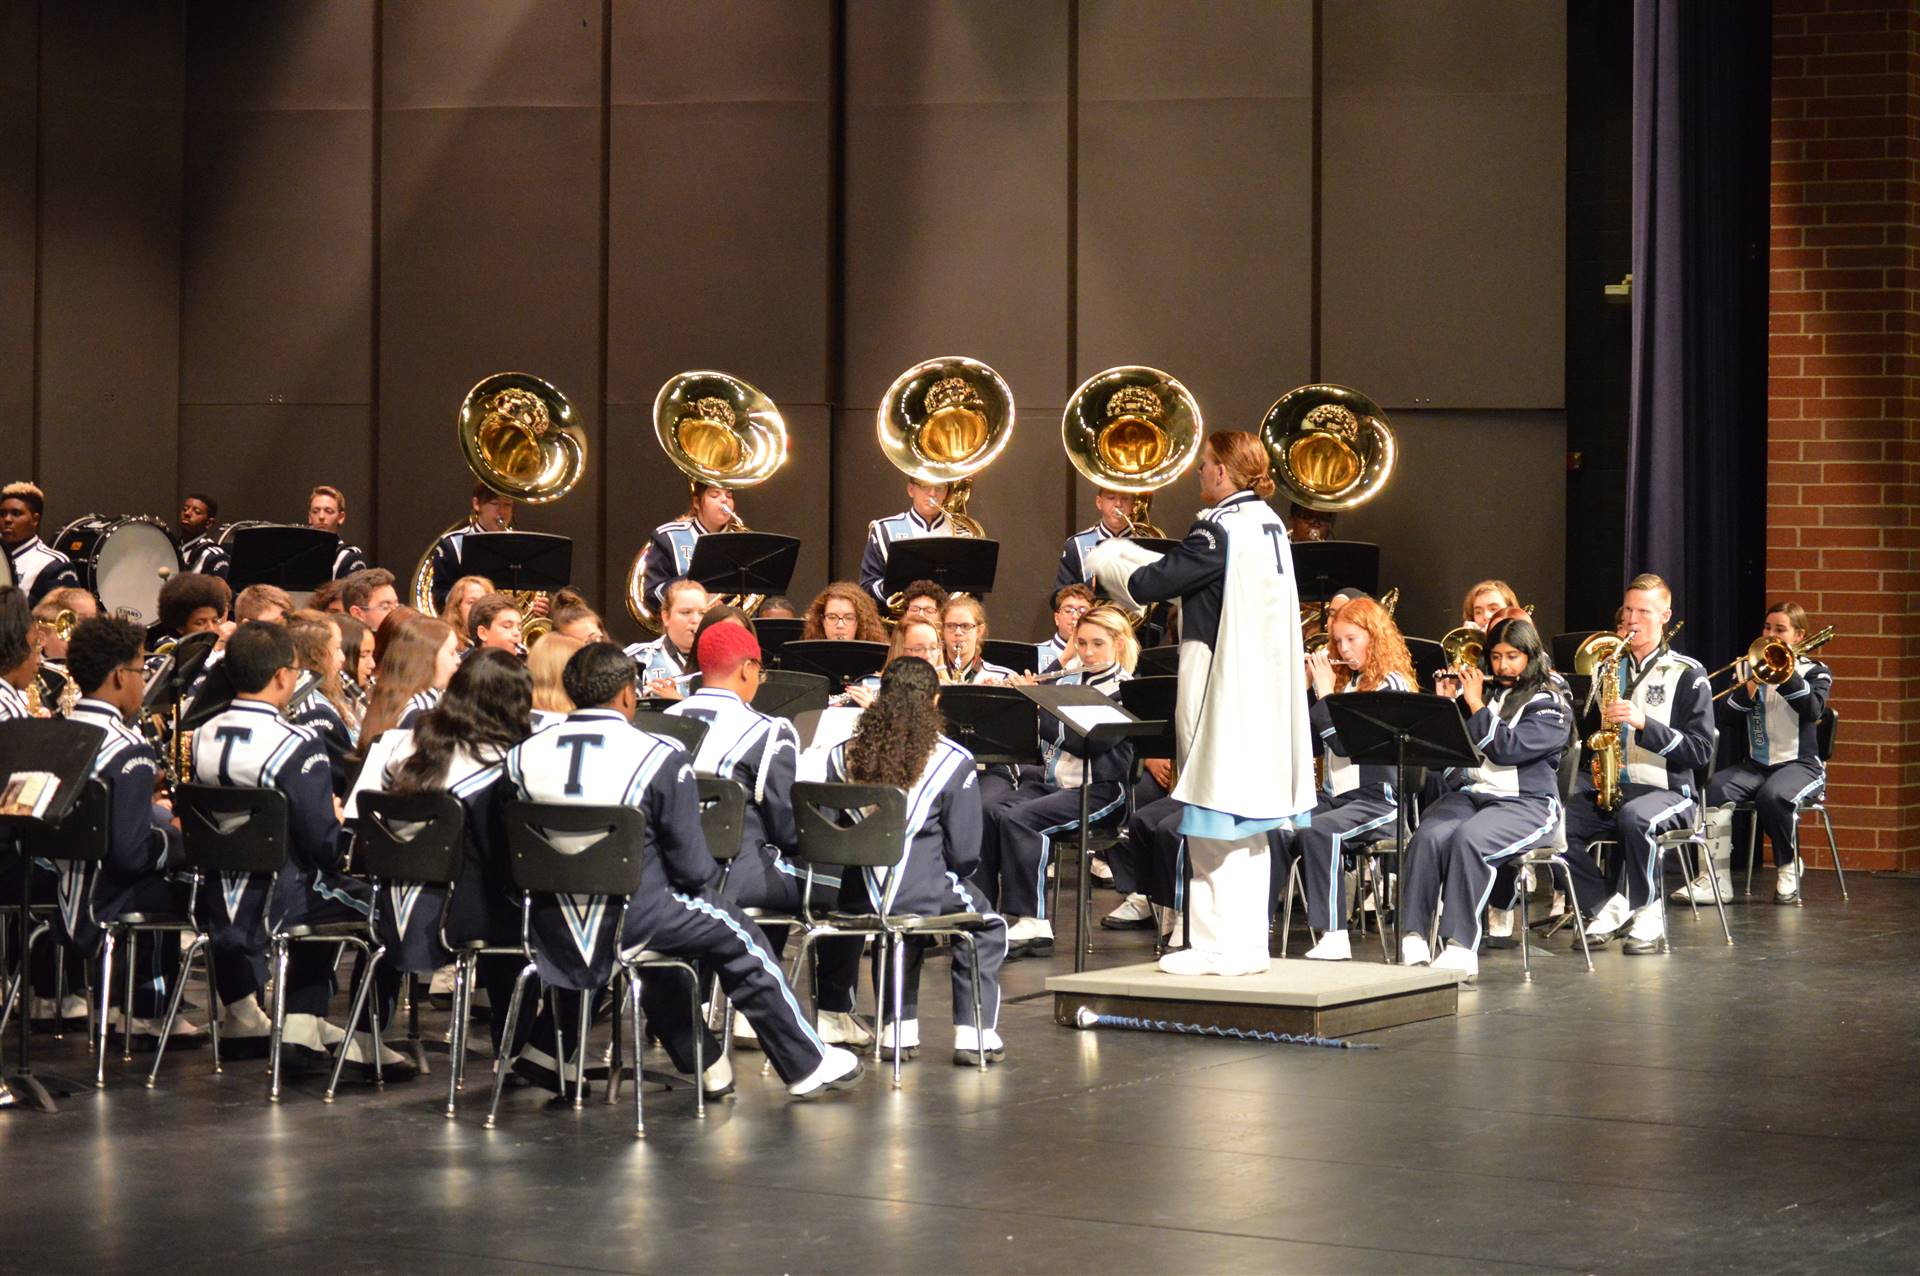 Marching Band on Stage for a Concert